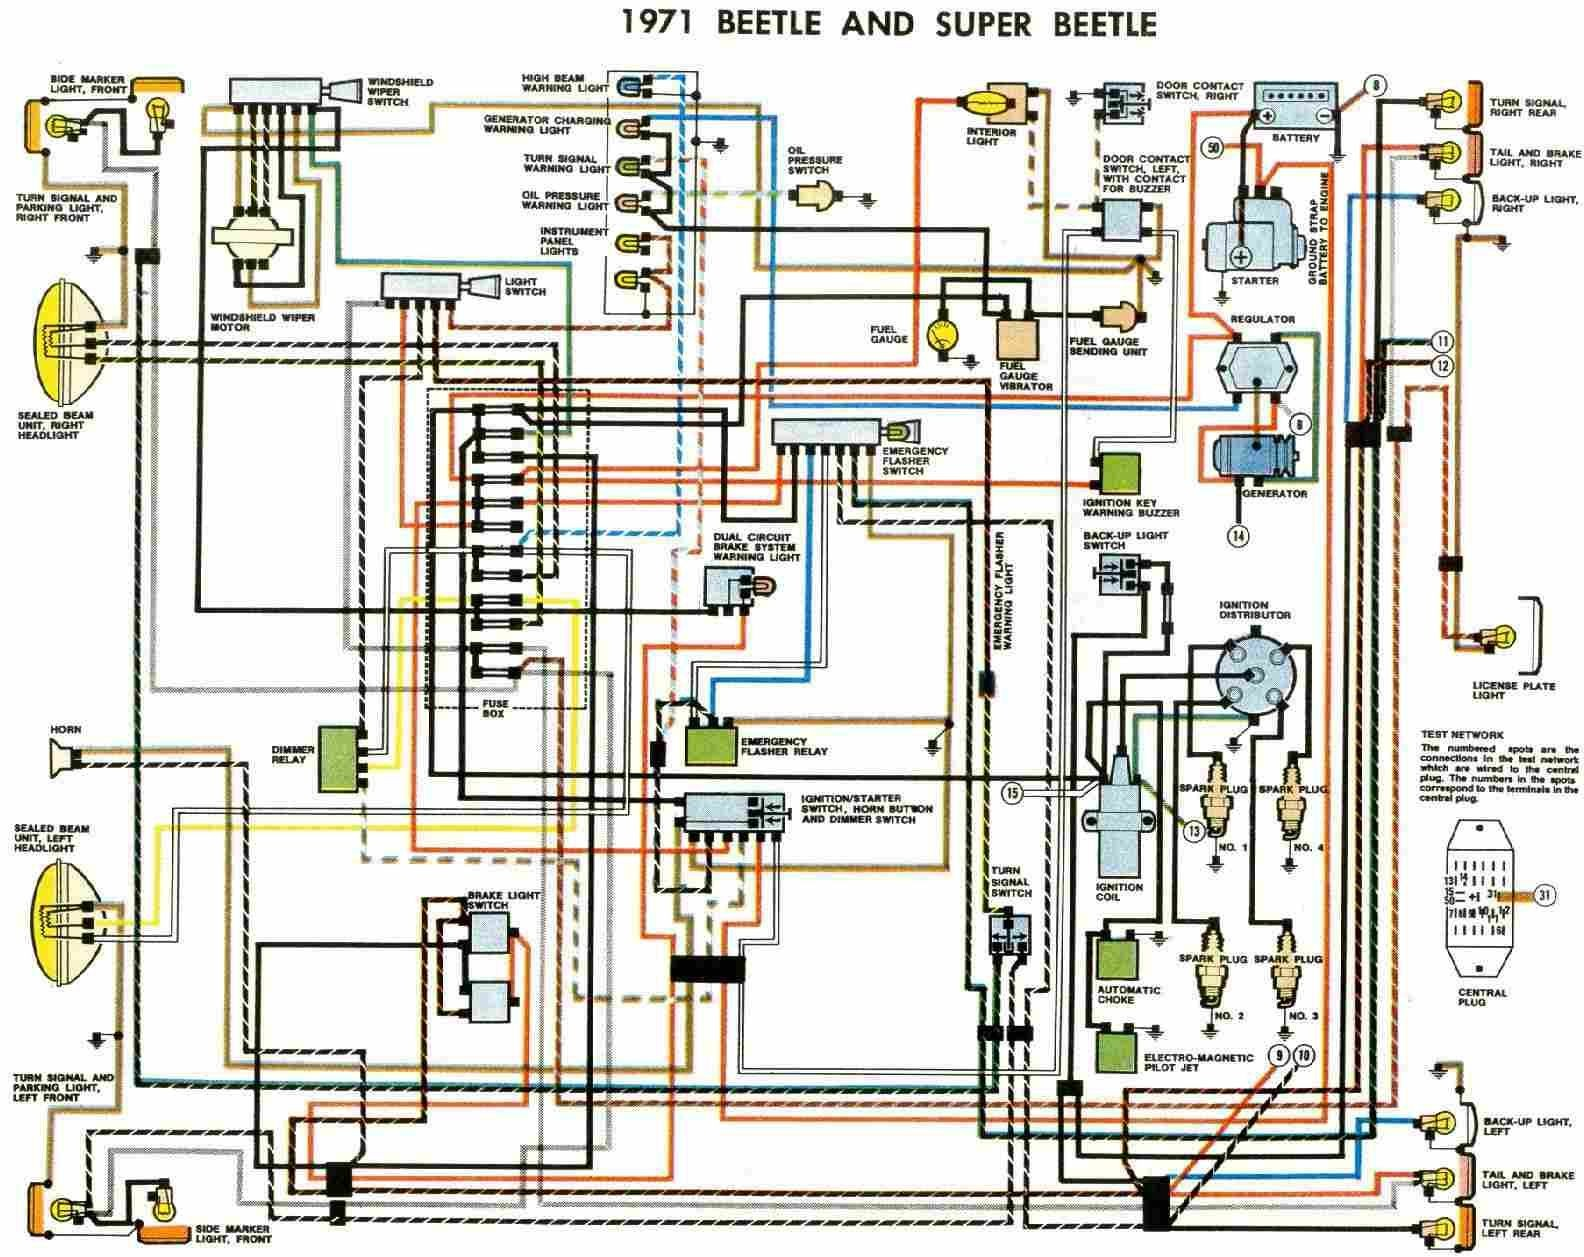 2000 Vw Beetle Ac Wiring Diagram | Wiring Schematic Diagram ... Ac Blower Wiring Diagram Beetle on